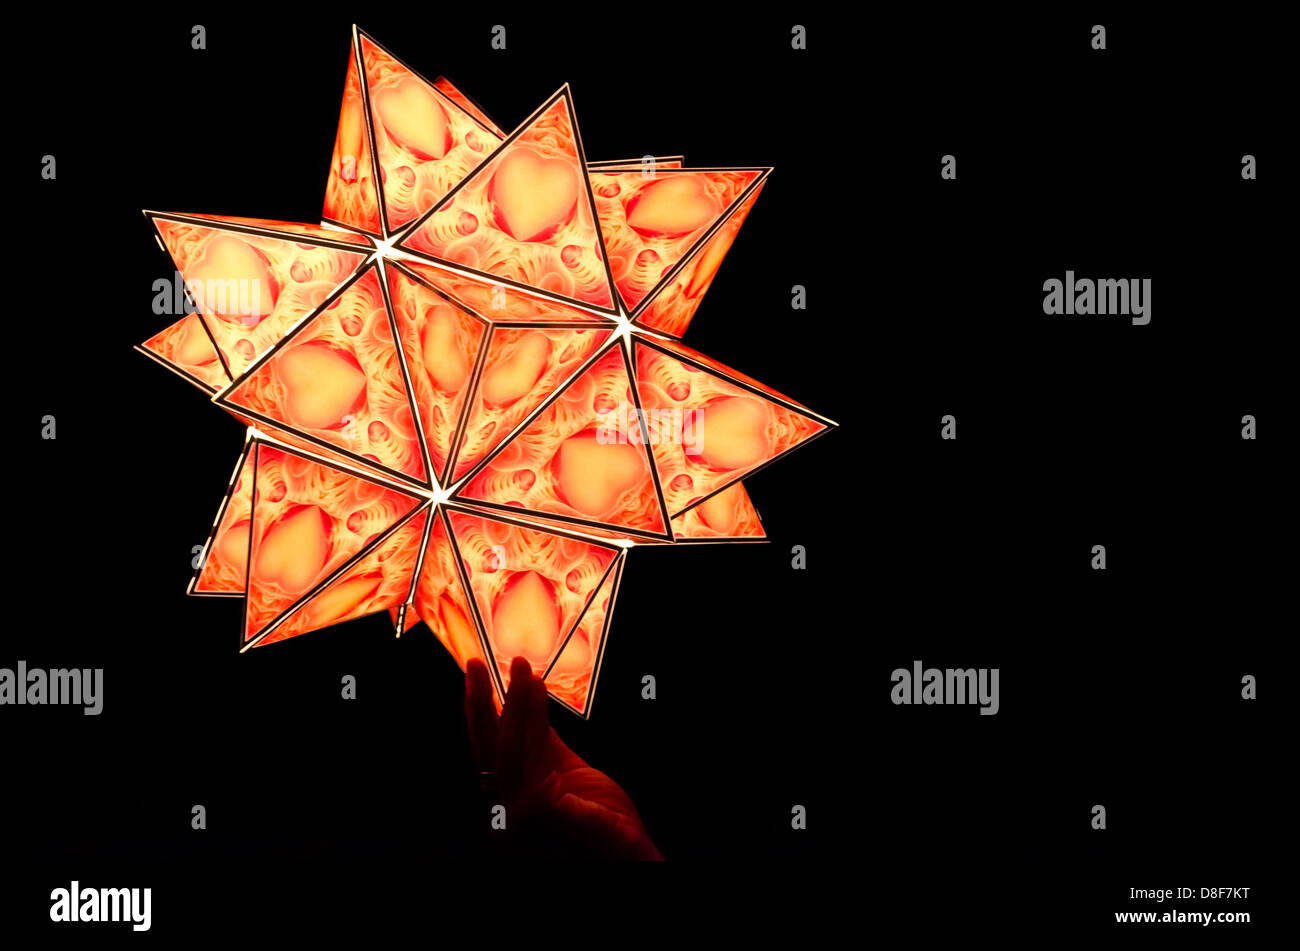 star-shaped-paper-lantern-from-a-the-illuminaires-2012-lantern-festival-D8F7KT.jpg